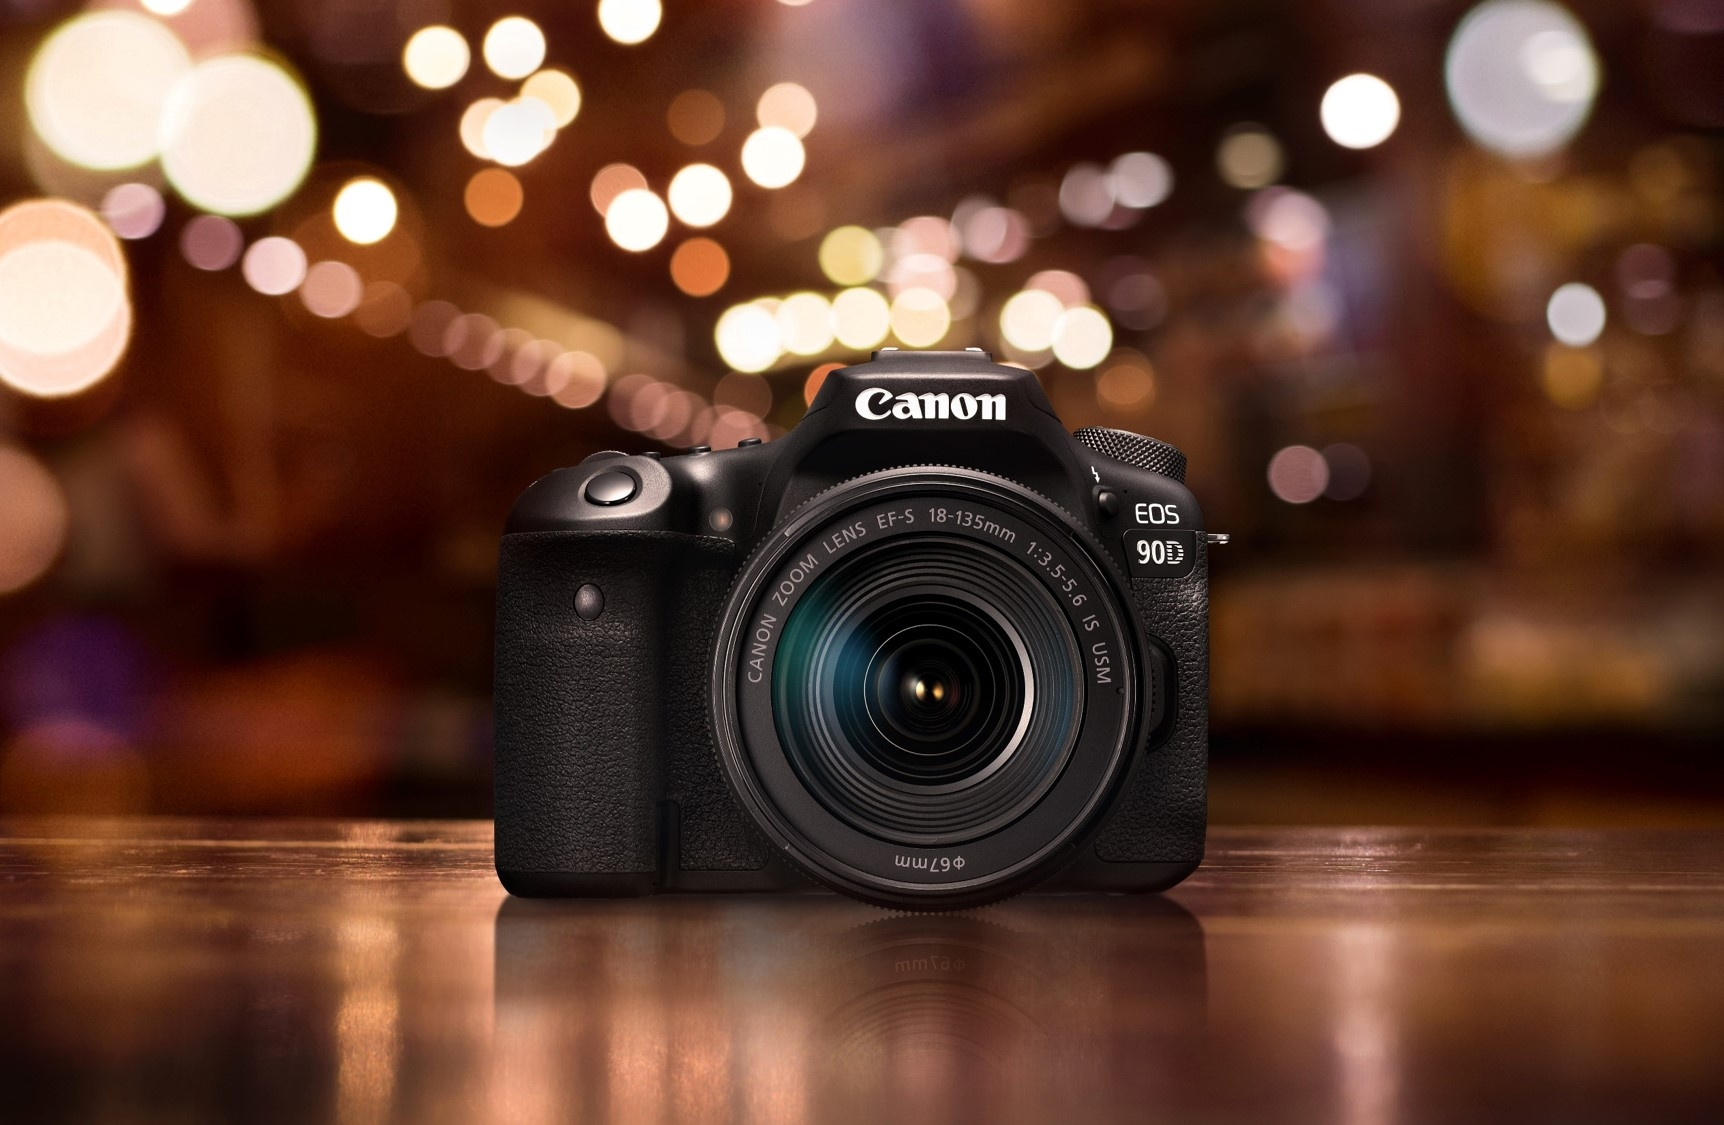 Canon 全新款單眼相機 EOS 90D